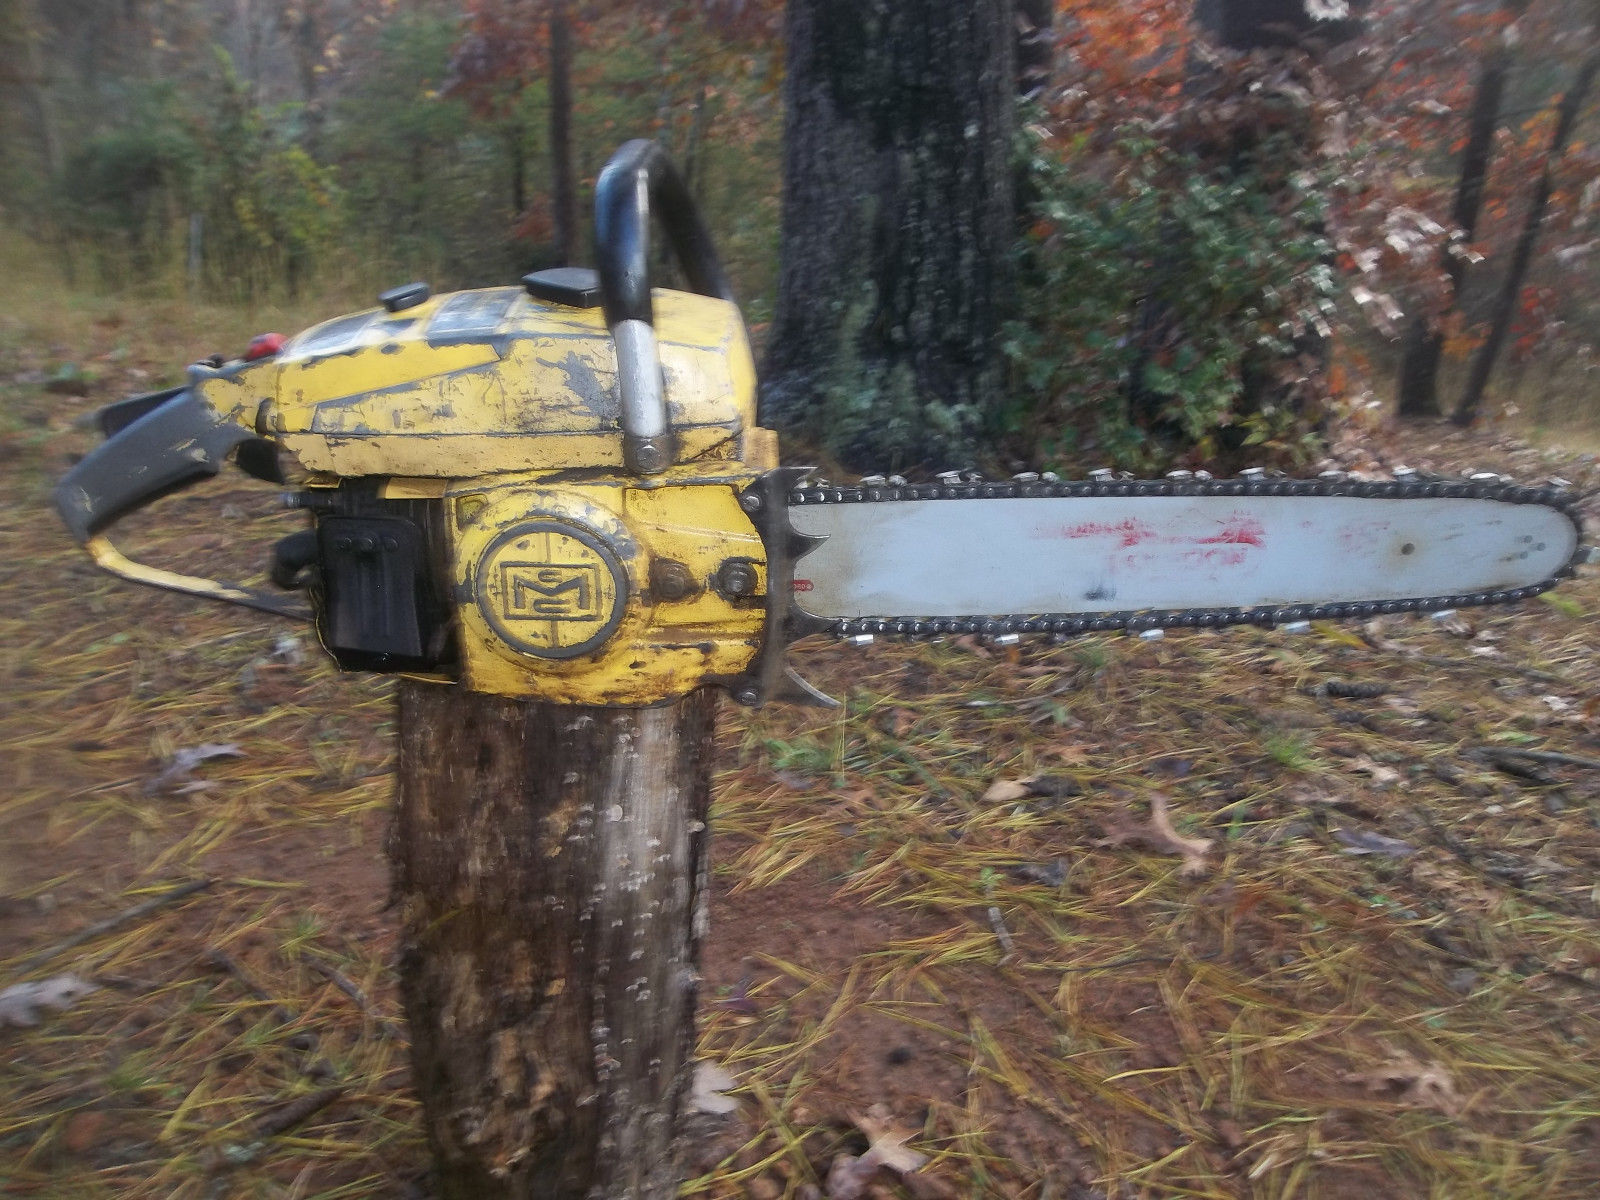 Mcculloch Promac Pm 700 Chainsaw Runs Dyer 2 Cycle